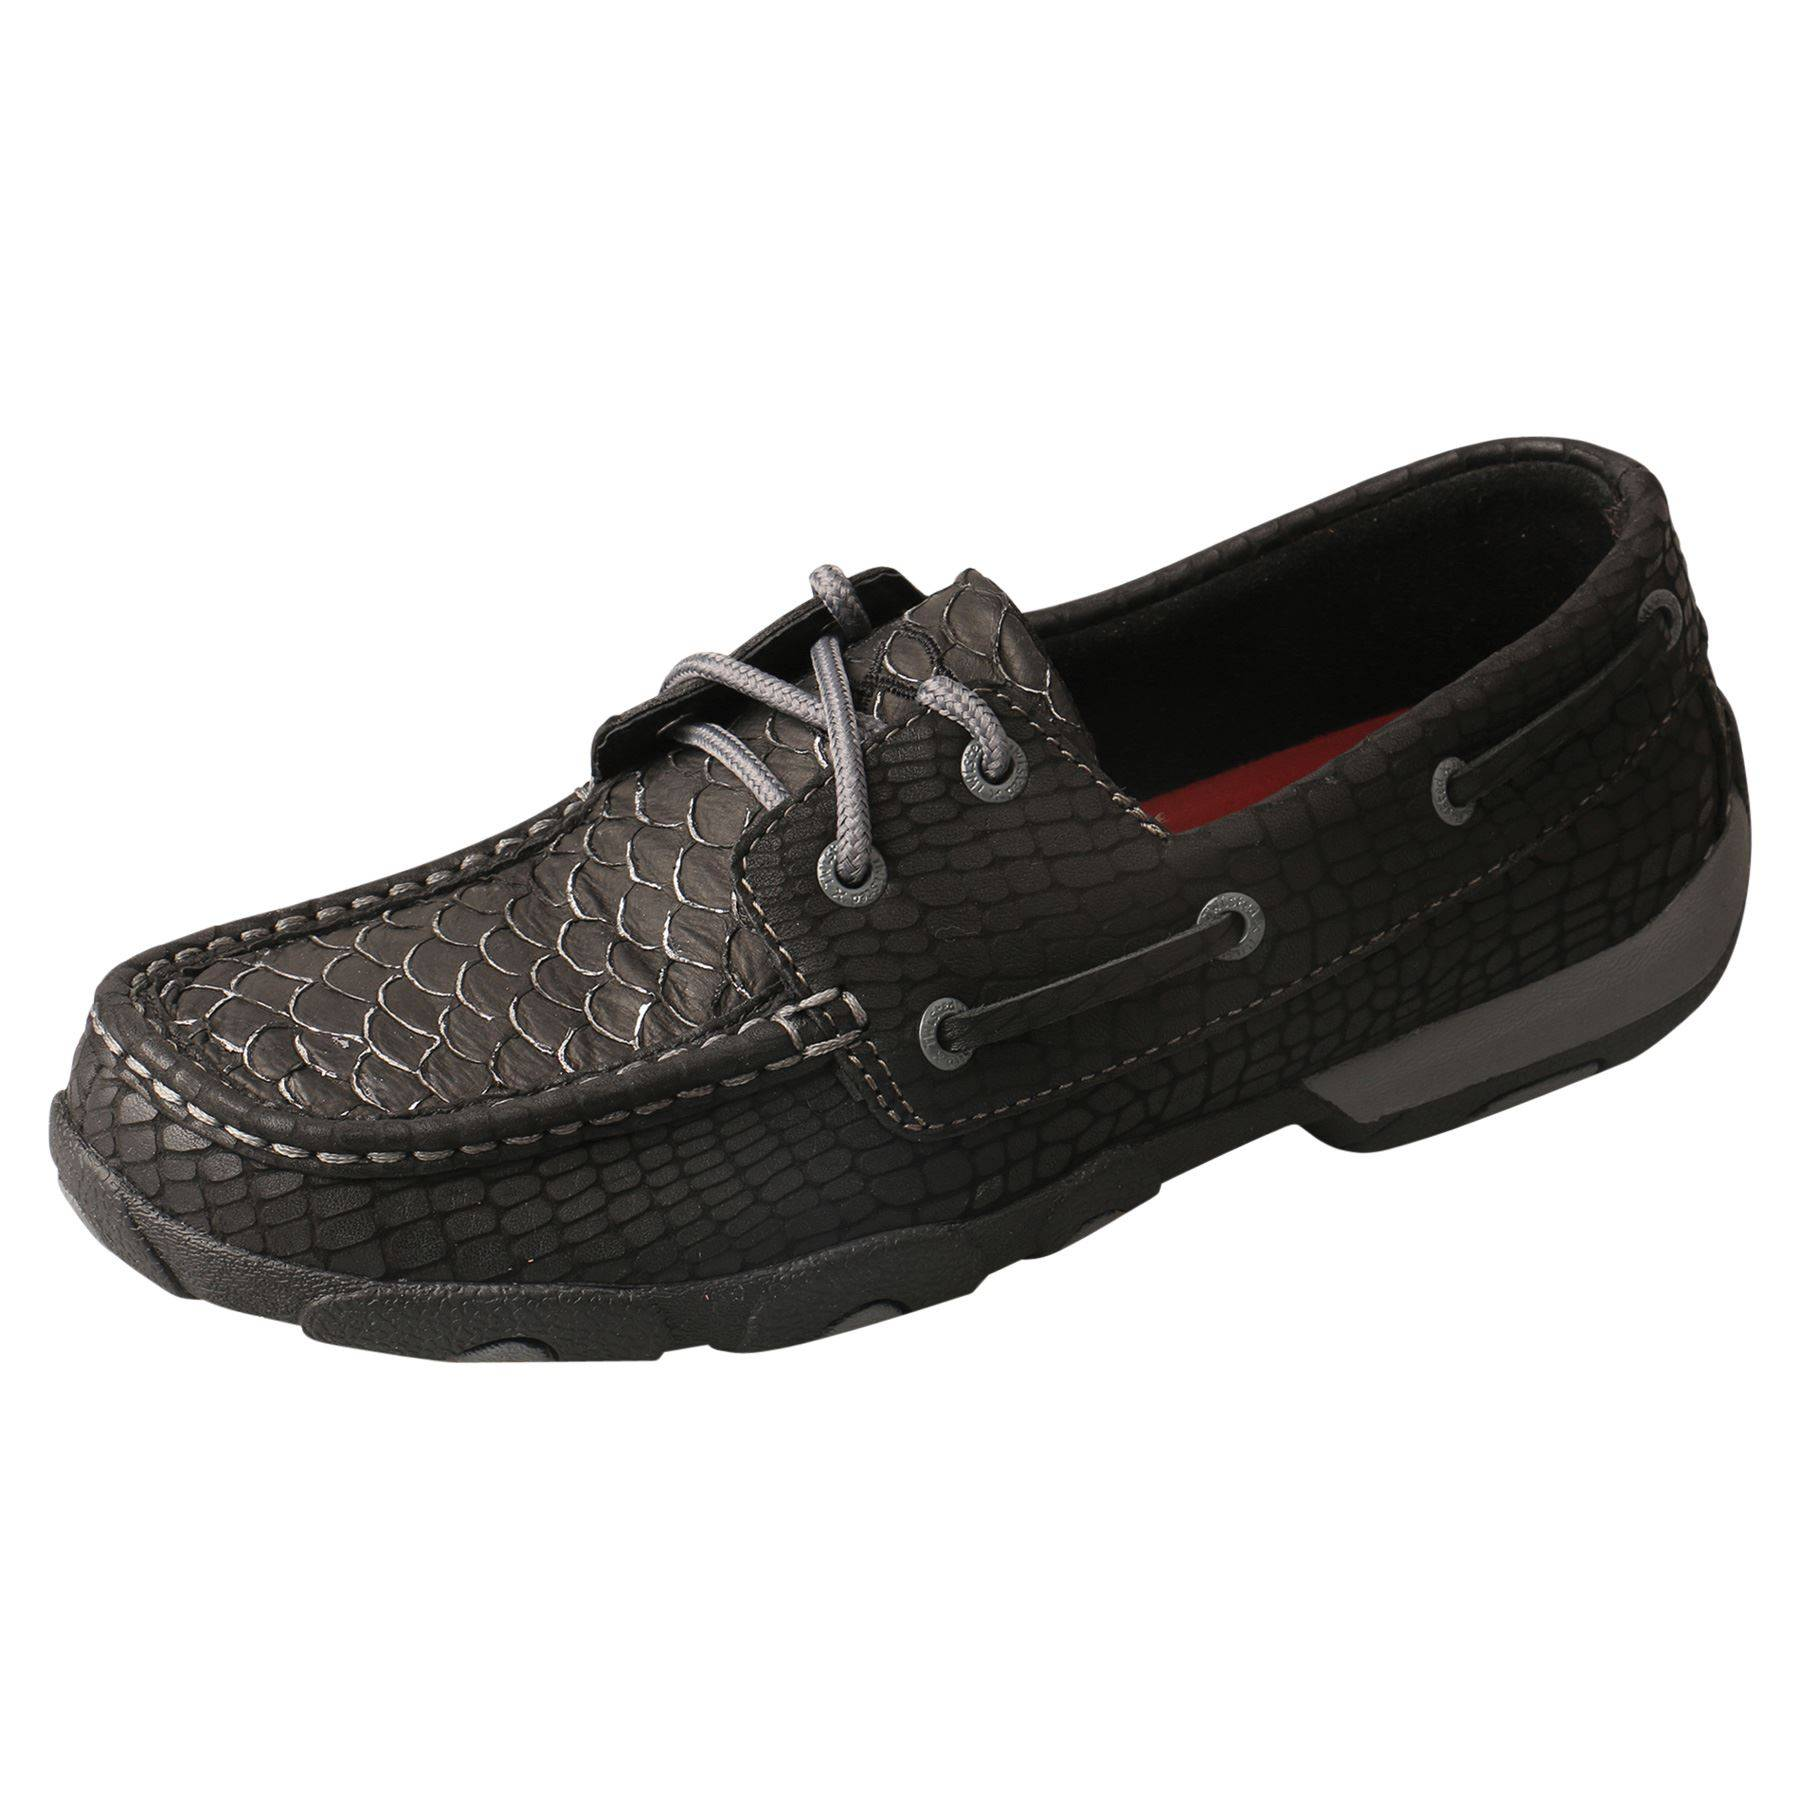 ad62963df3f Twisted X Womens Black Fish Grey Driving Mocs in Apparel Boots at ...